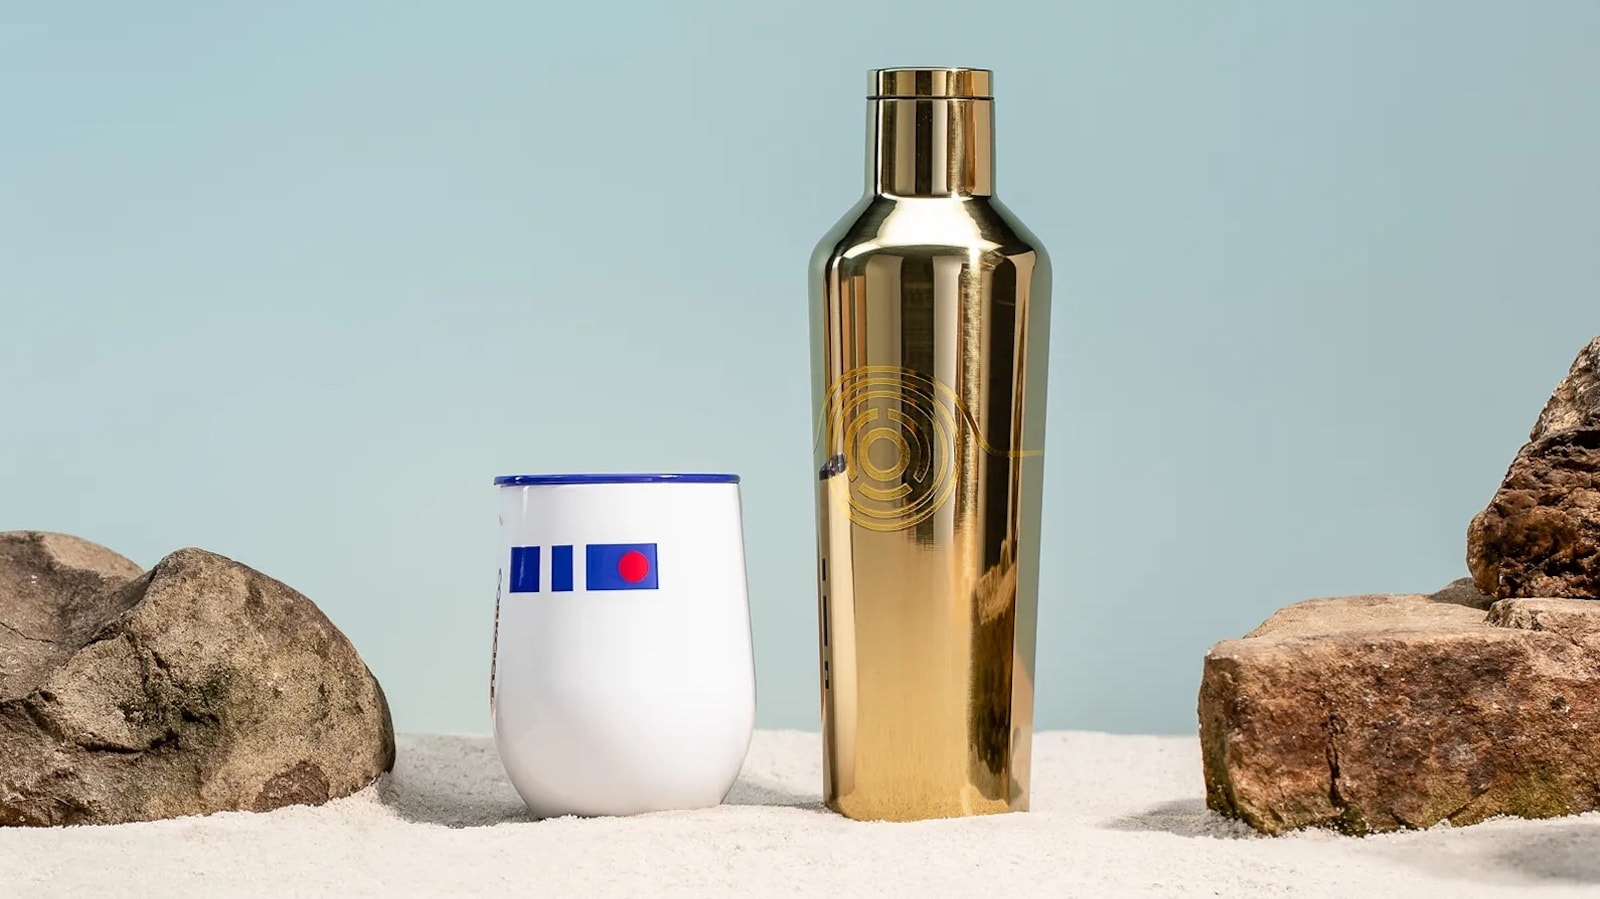 CORKCICLE Star Wars drinkware collection celebrates the film's 40th anniversary